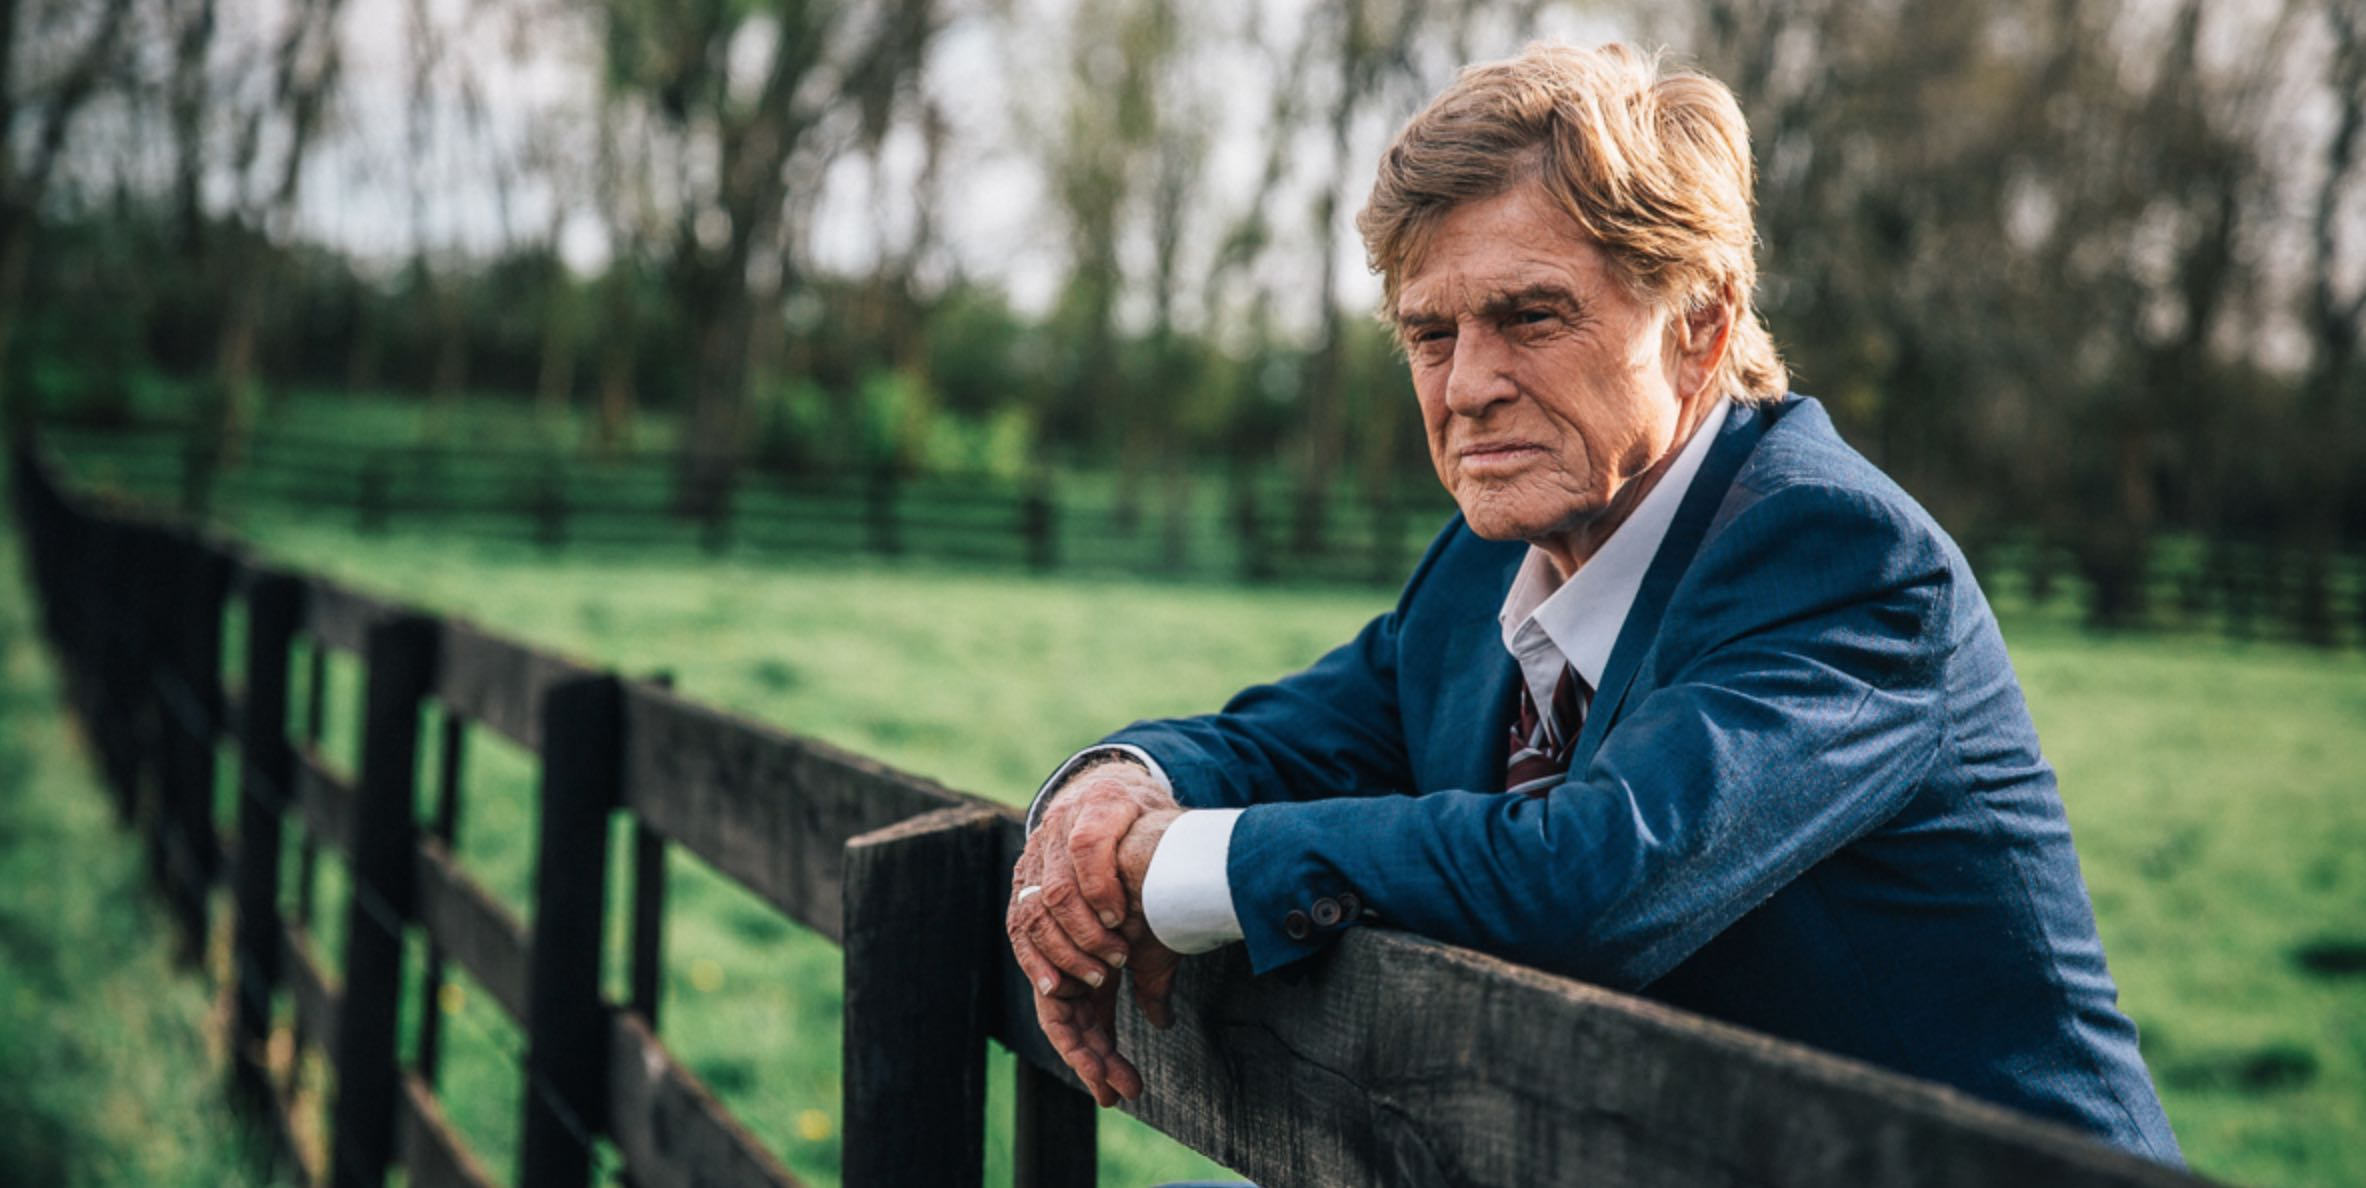 Robert Redford Old Man gun